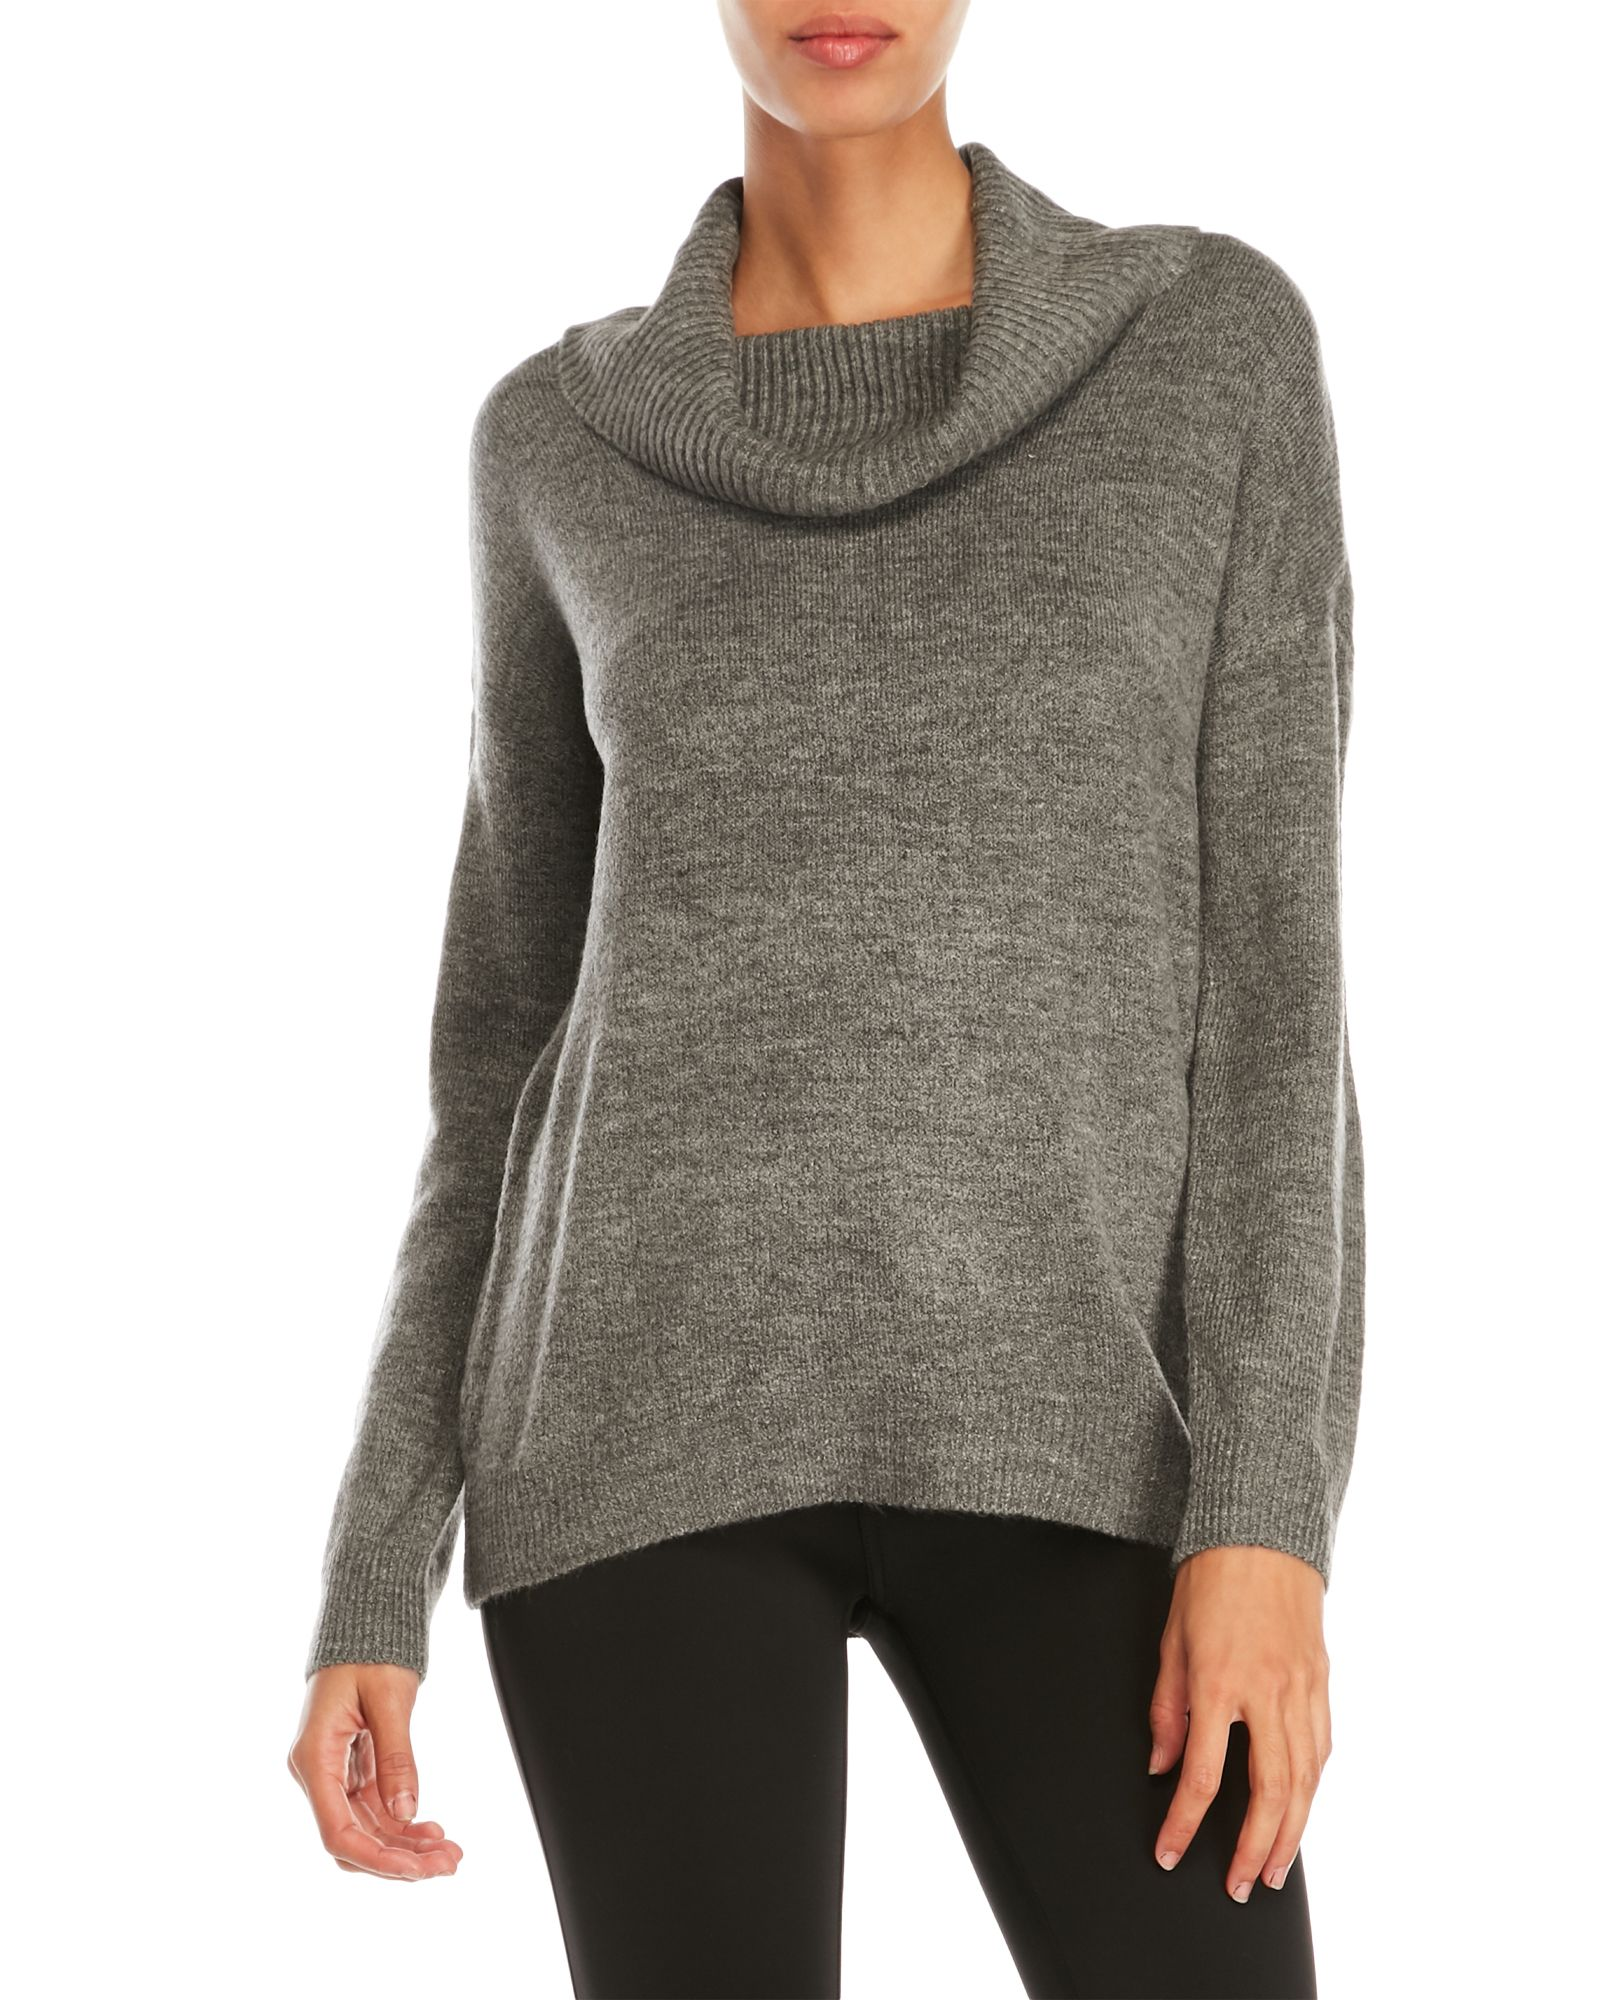 Cowl Neck Sweater | Cashmere turtleneck, Sweaters, Turtle neck